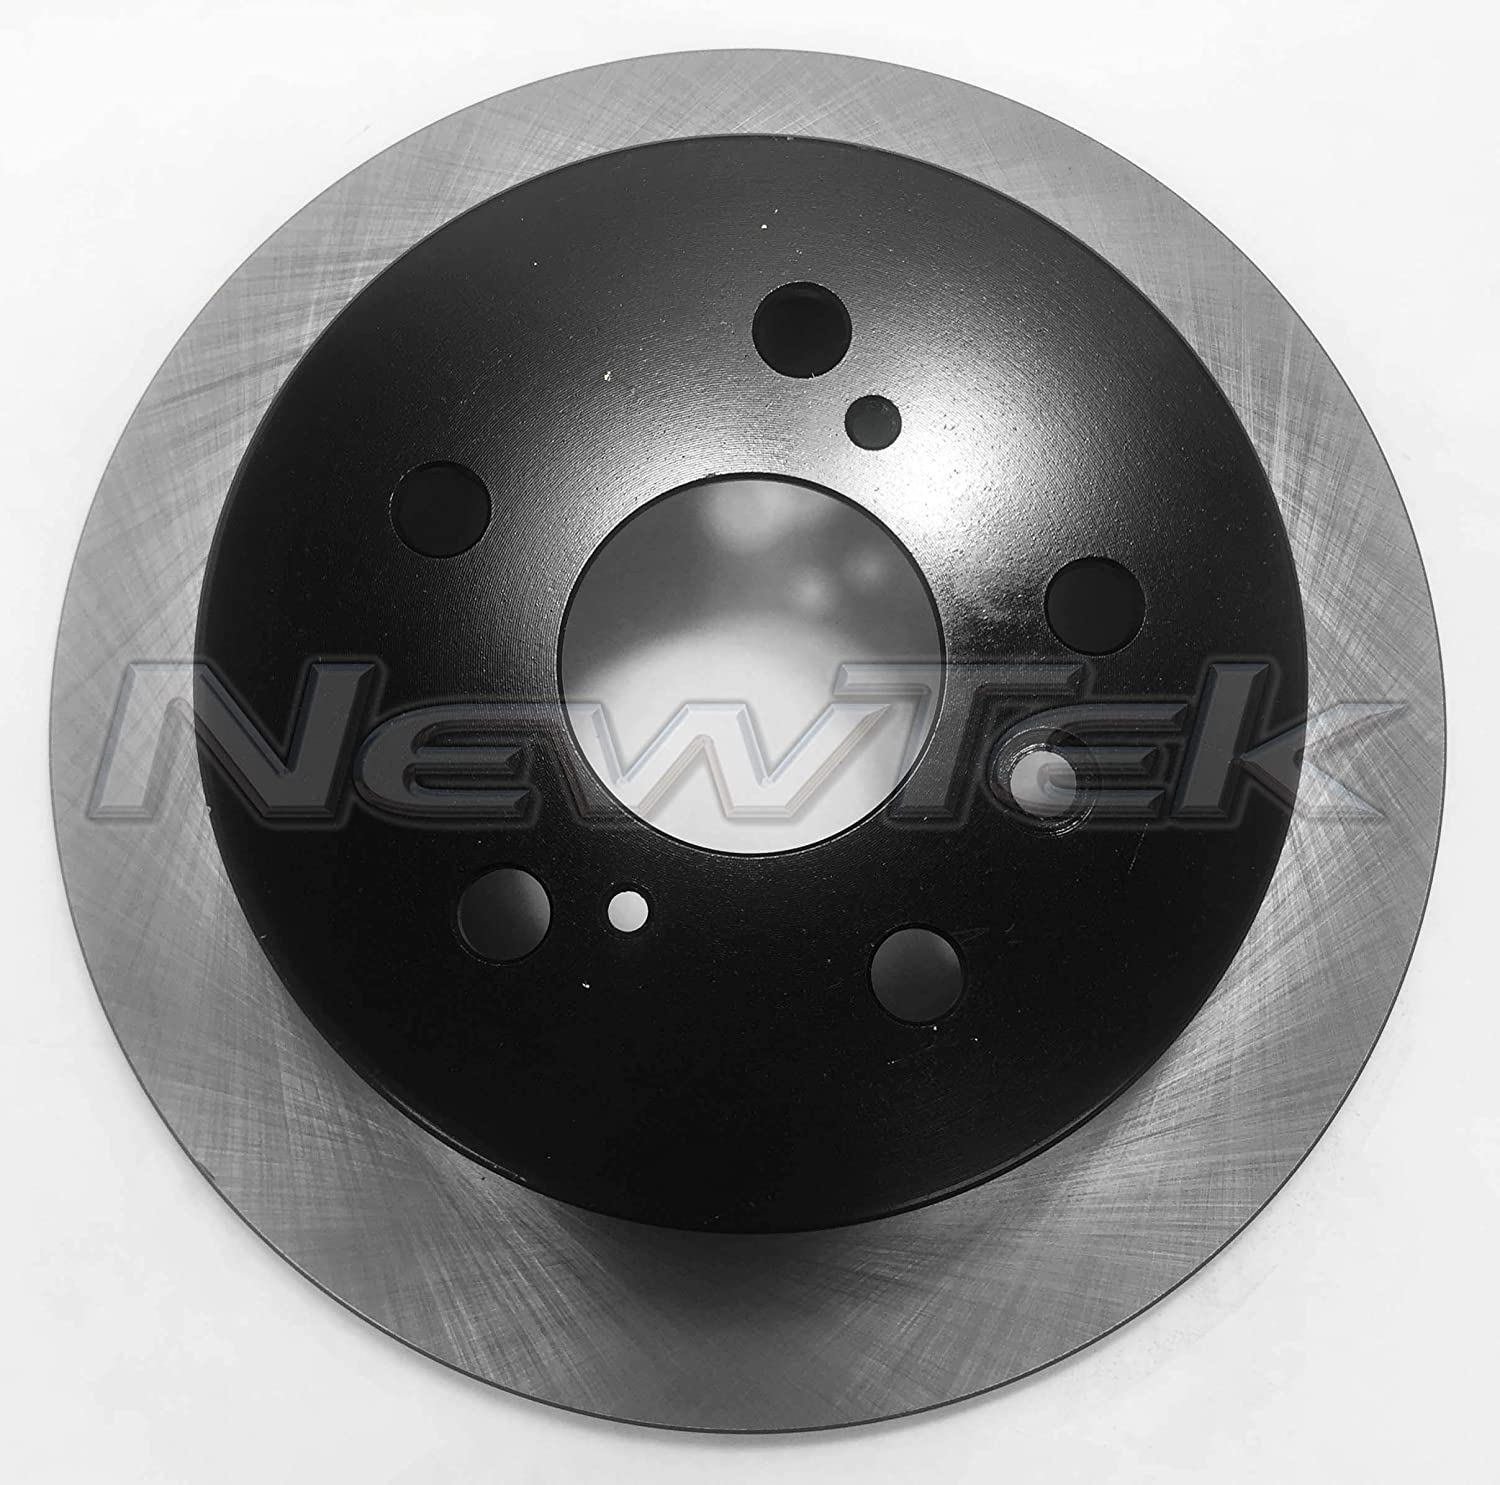 New Disc Brake Rotor for ES330 Solara sold out Camry Avalon Bargain ES300